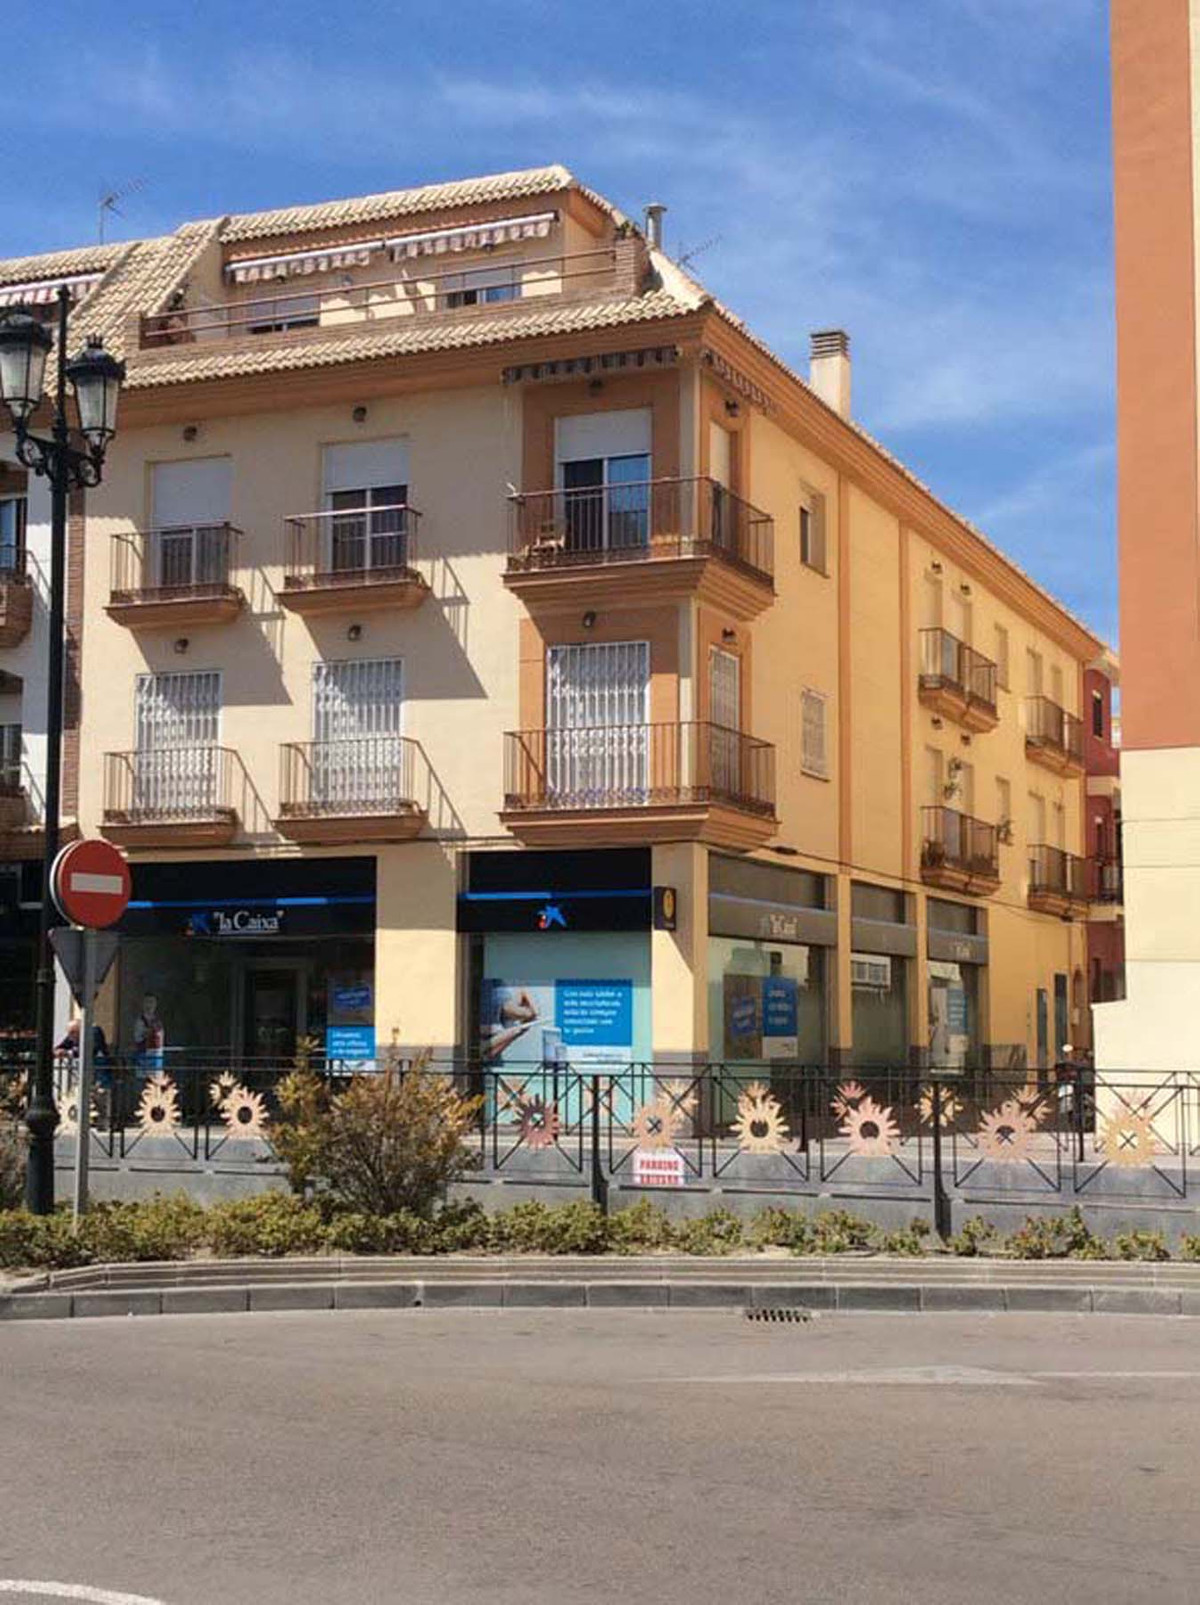 Lovely apartment in Los Boliches (Fuengirola) in very good condition and recently renovated 180 mete, Spain